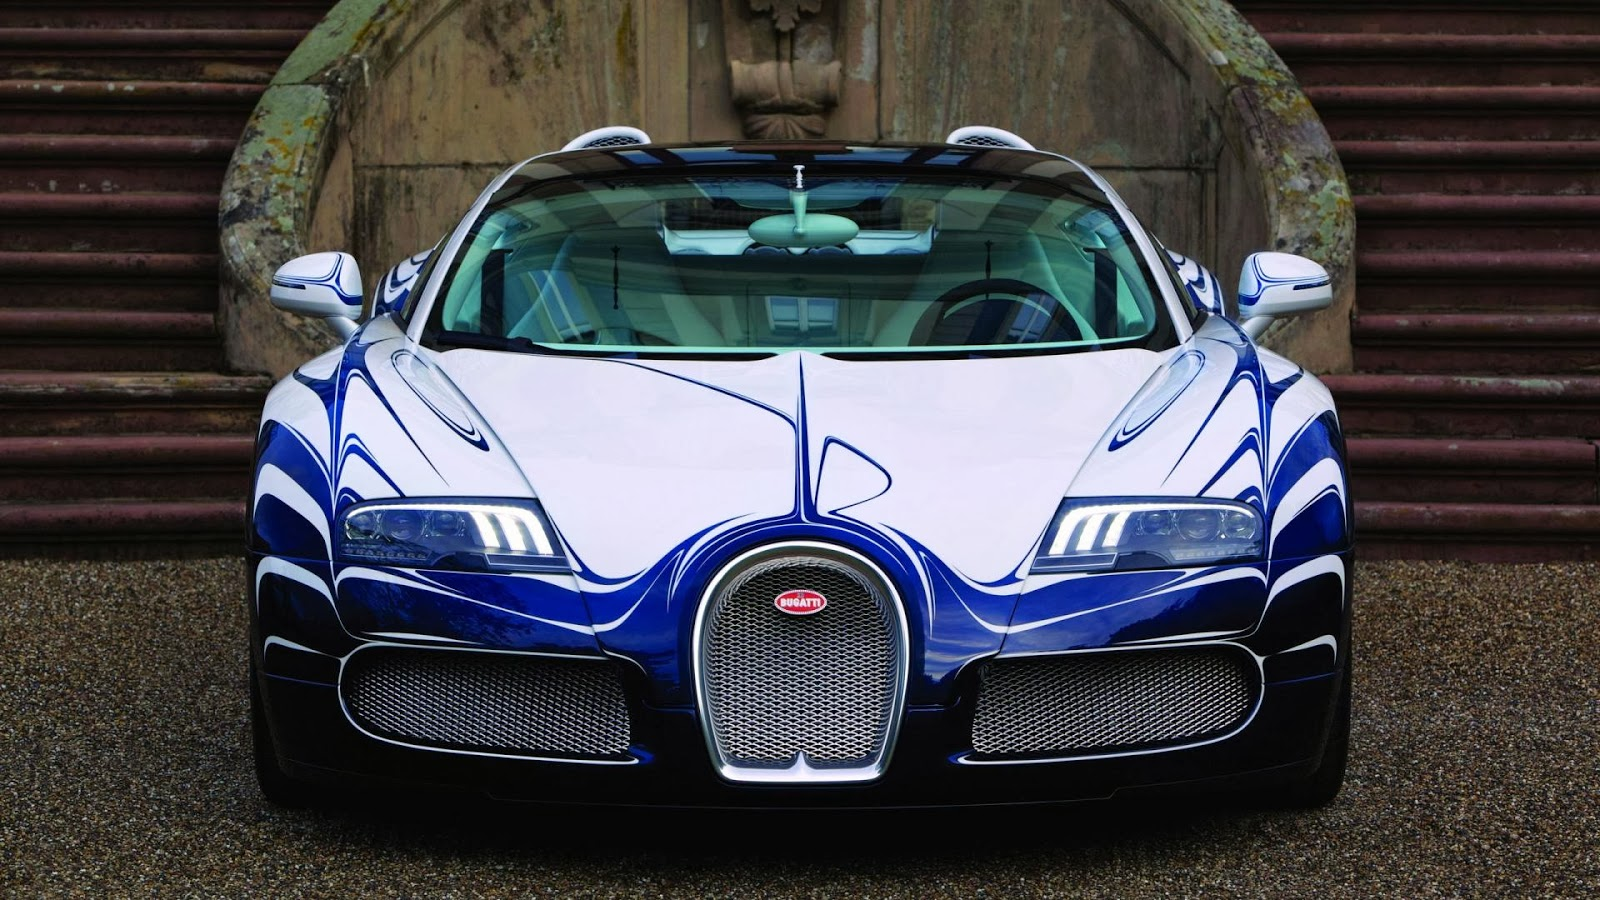 The Super Car Bugatti Veyron Sells Its 400th Just 50 More To Sell